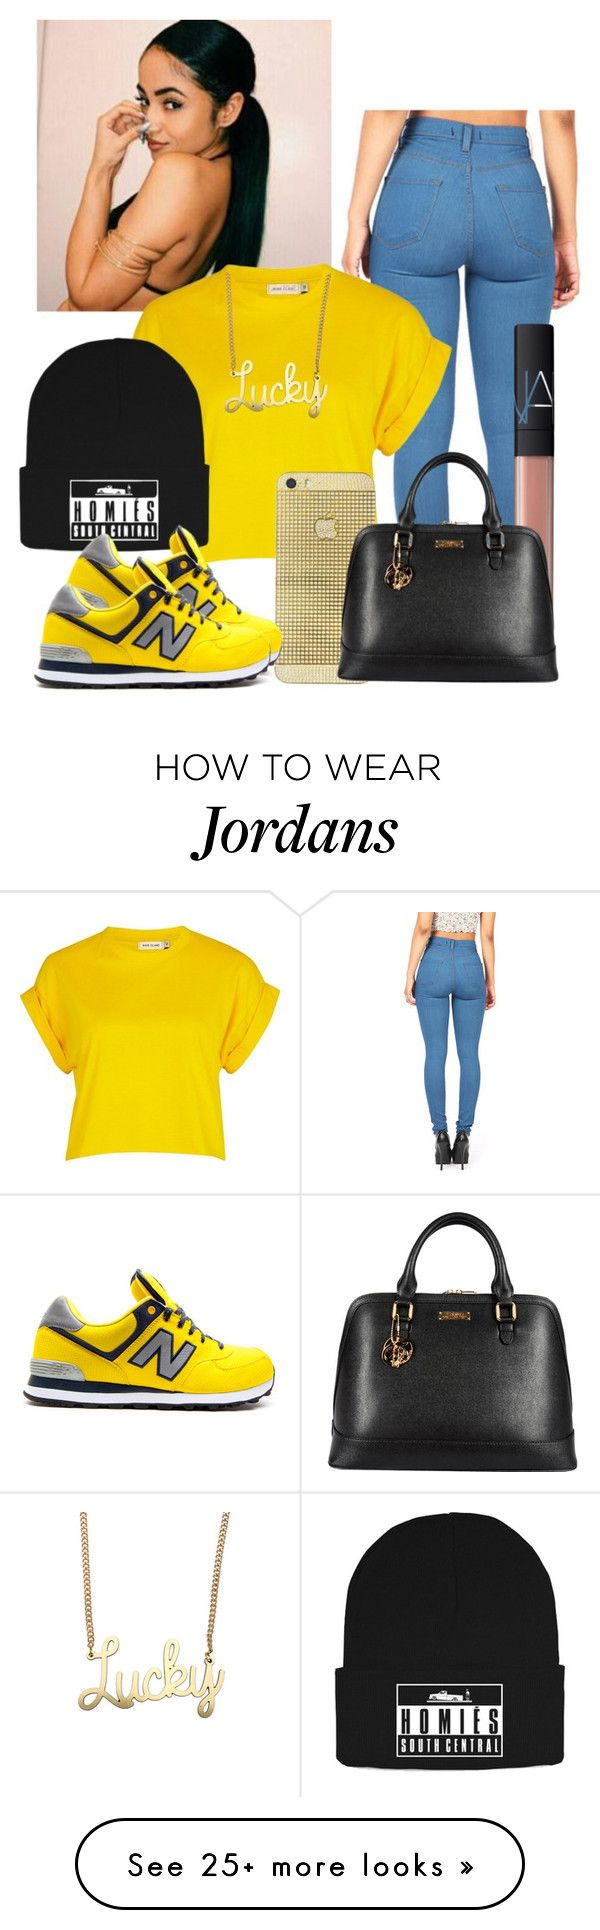 """""""Yo, He In Love With A Ghetto Girl And Wanna Piece Like Metta World"""" by wvnnie on Polyvore featuring River Island, Brian Lichtenberg, NARS Cosmetics and Versace"""